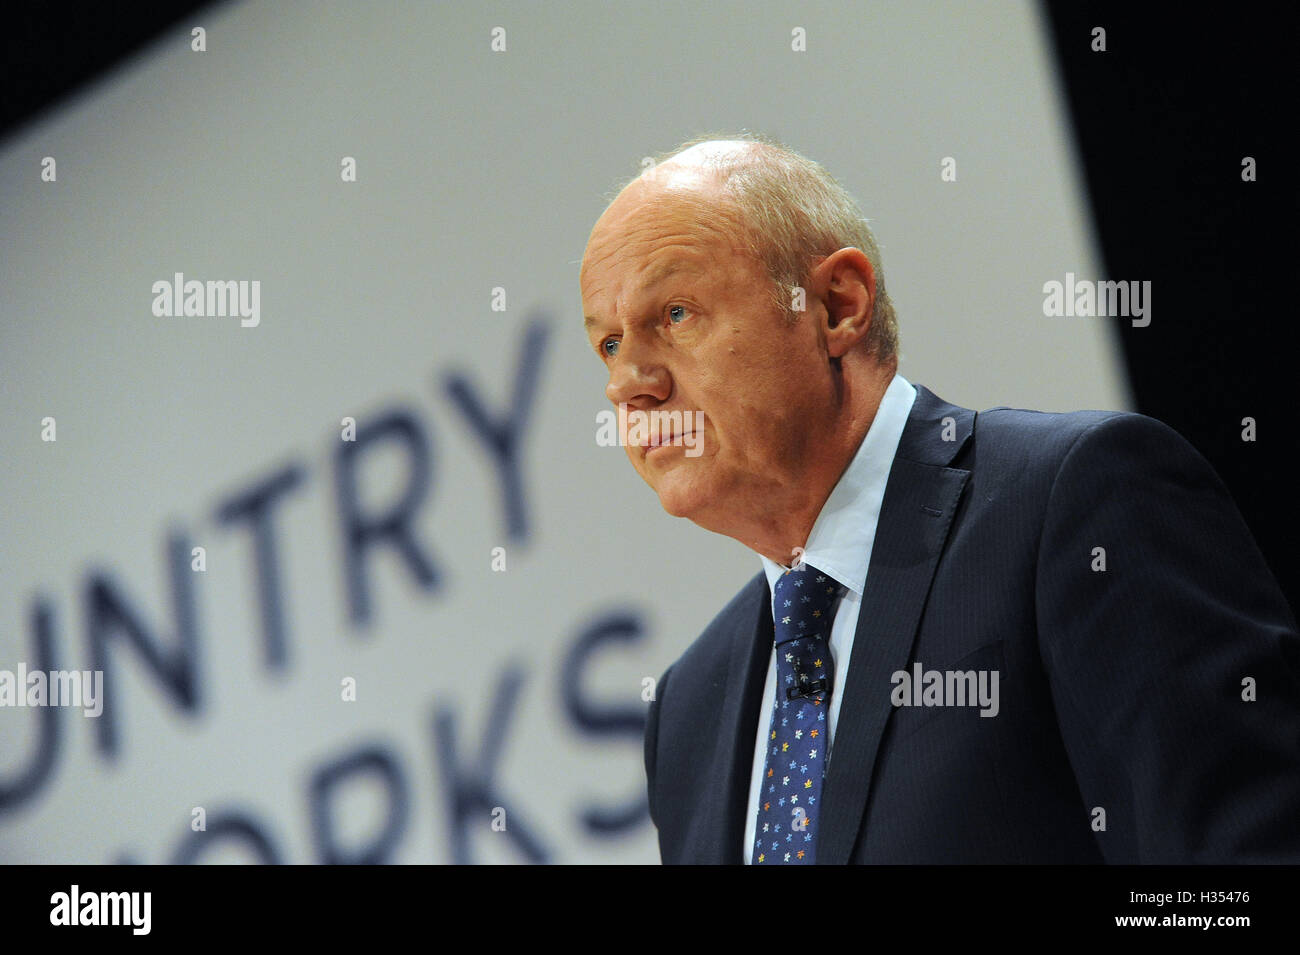 Birmingham, UK. 4th Oct, 2016. Damian Green, Secretary of State for work and Pensions delivers his speech to conference, - Stock Image